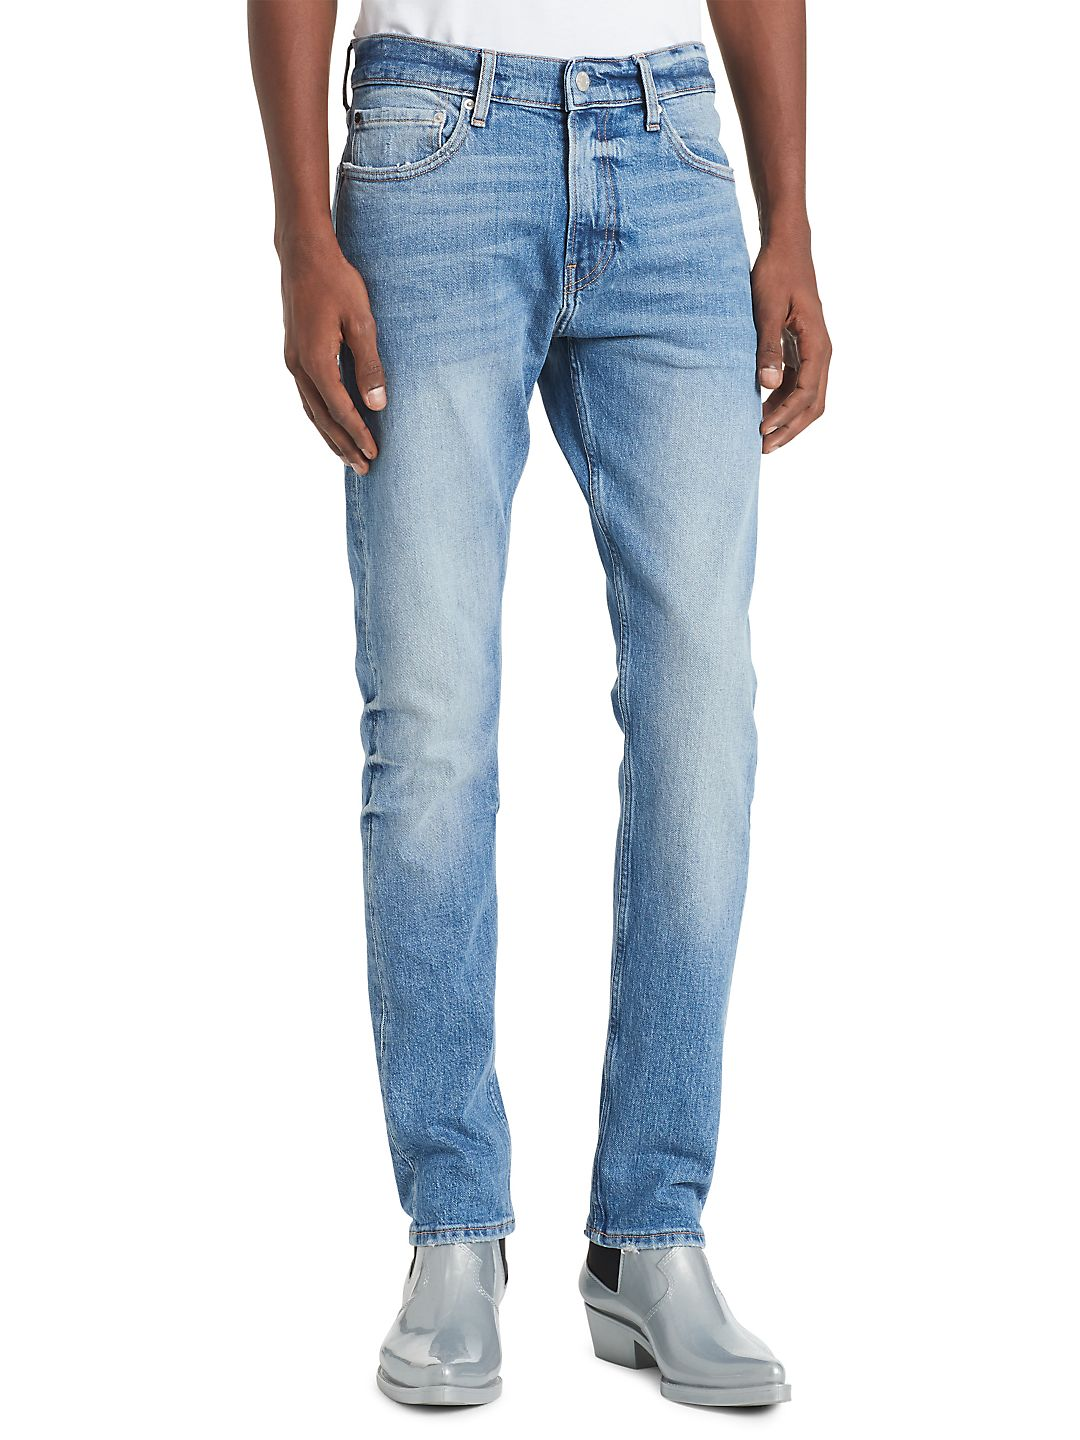 Mauritius Athletic Tapered Jeans